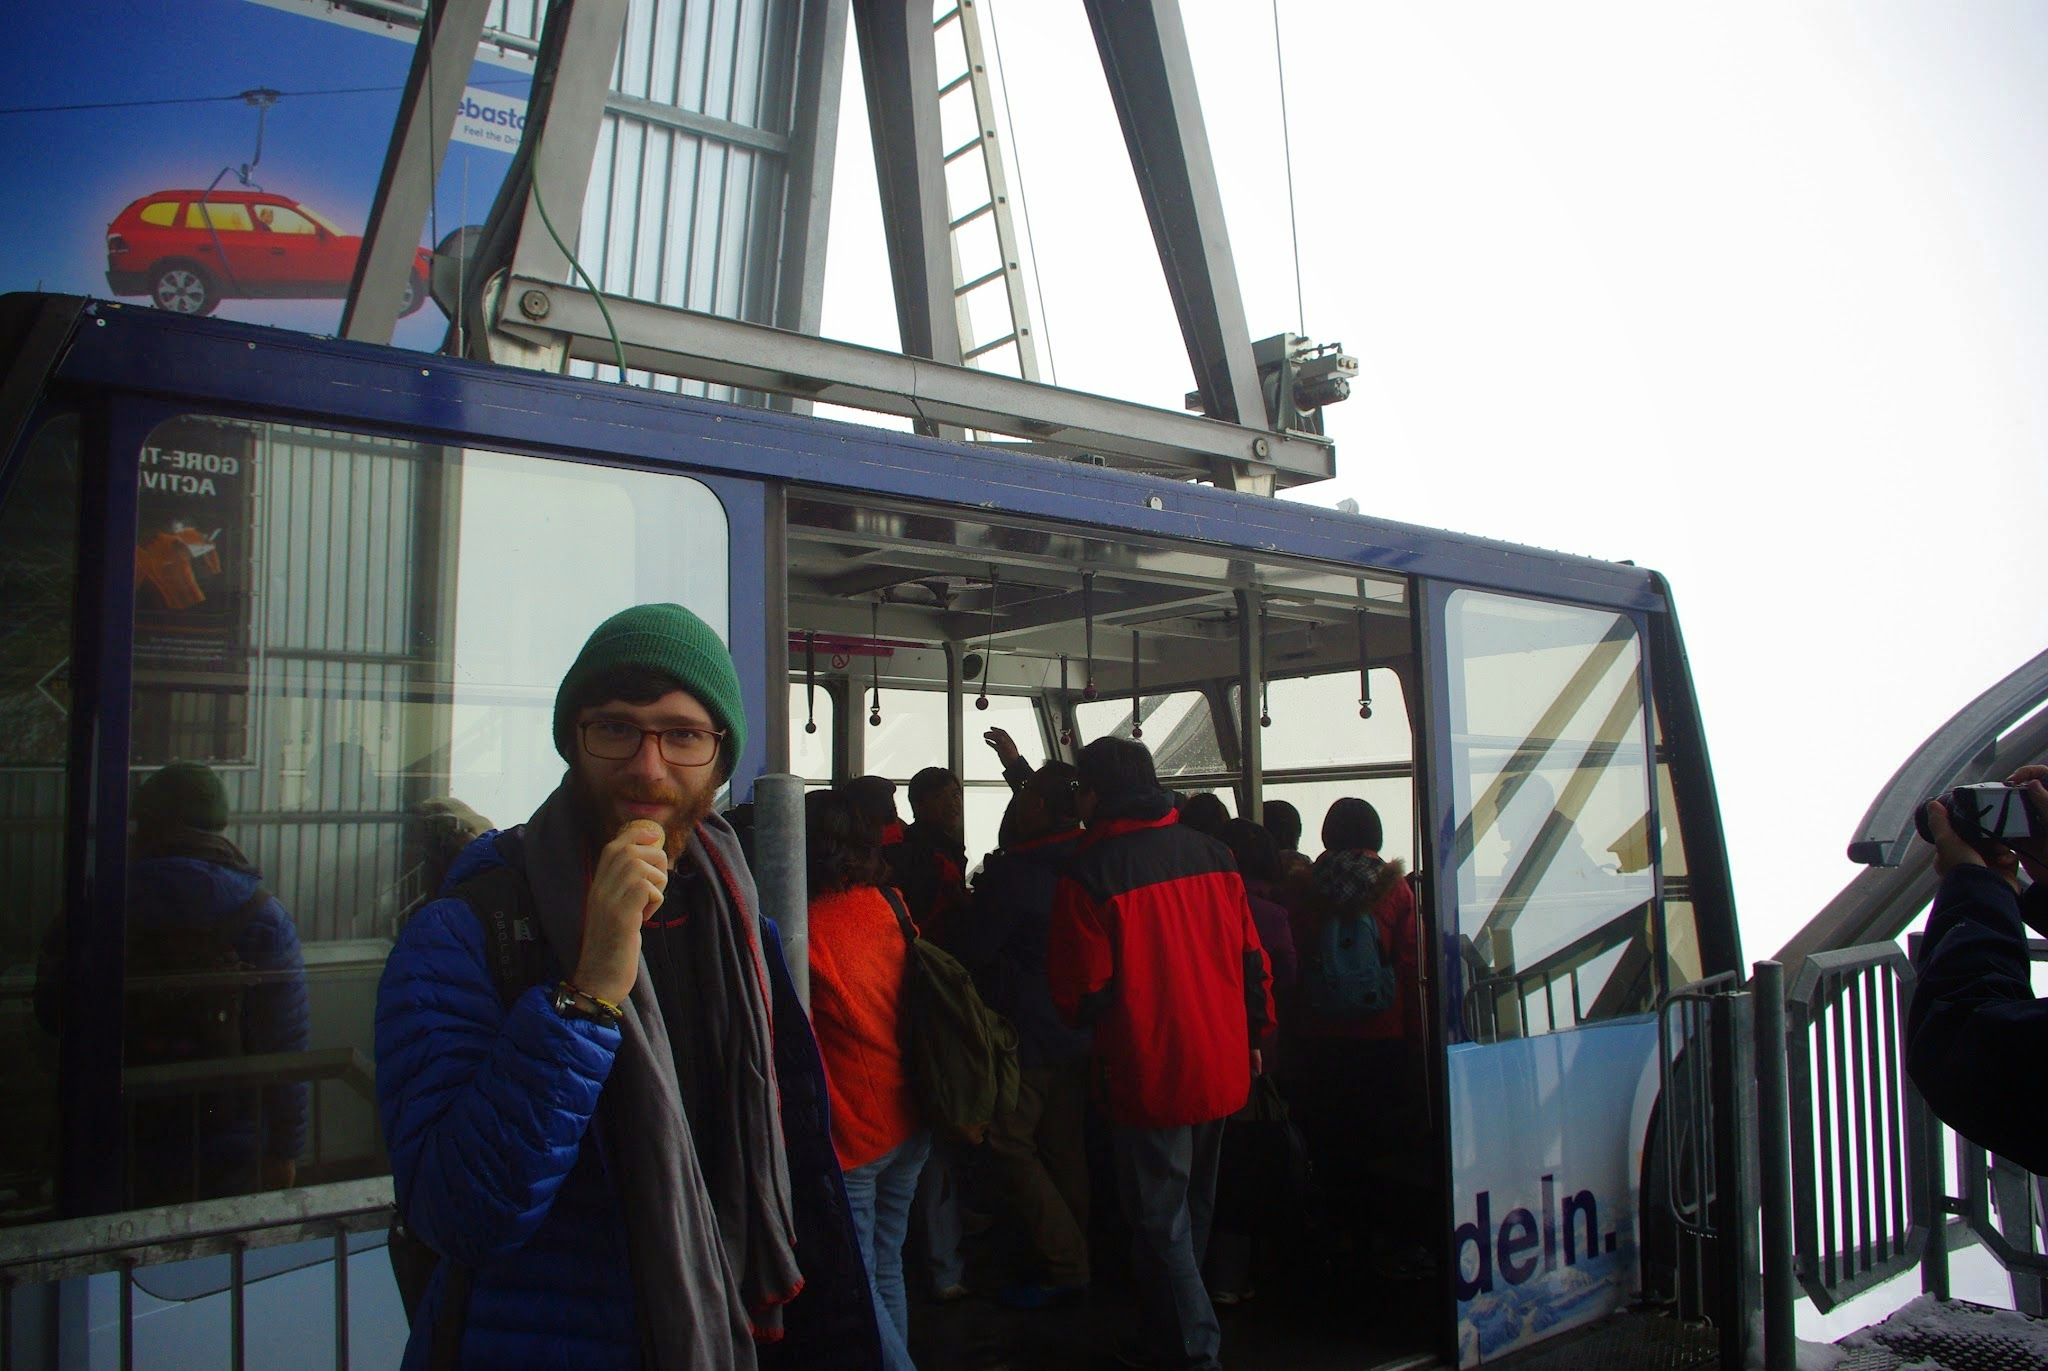 After sledding and getting some ice cream cones (why not?), we got on the funicular that would take us to the summit.